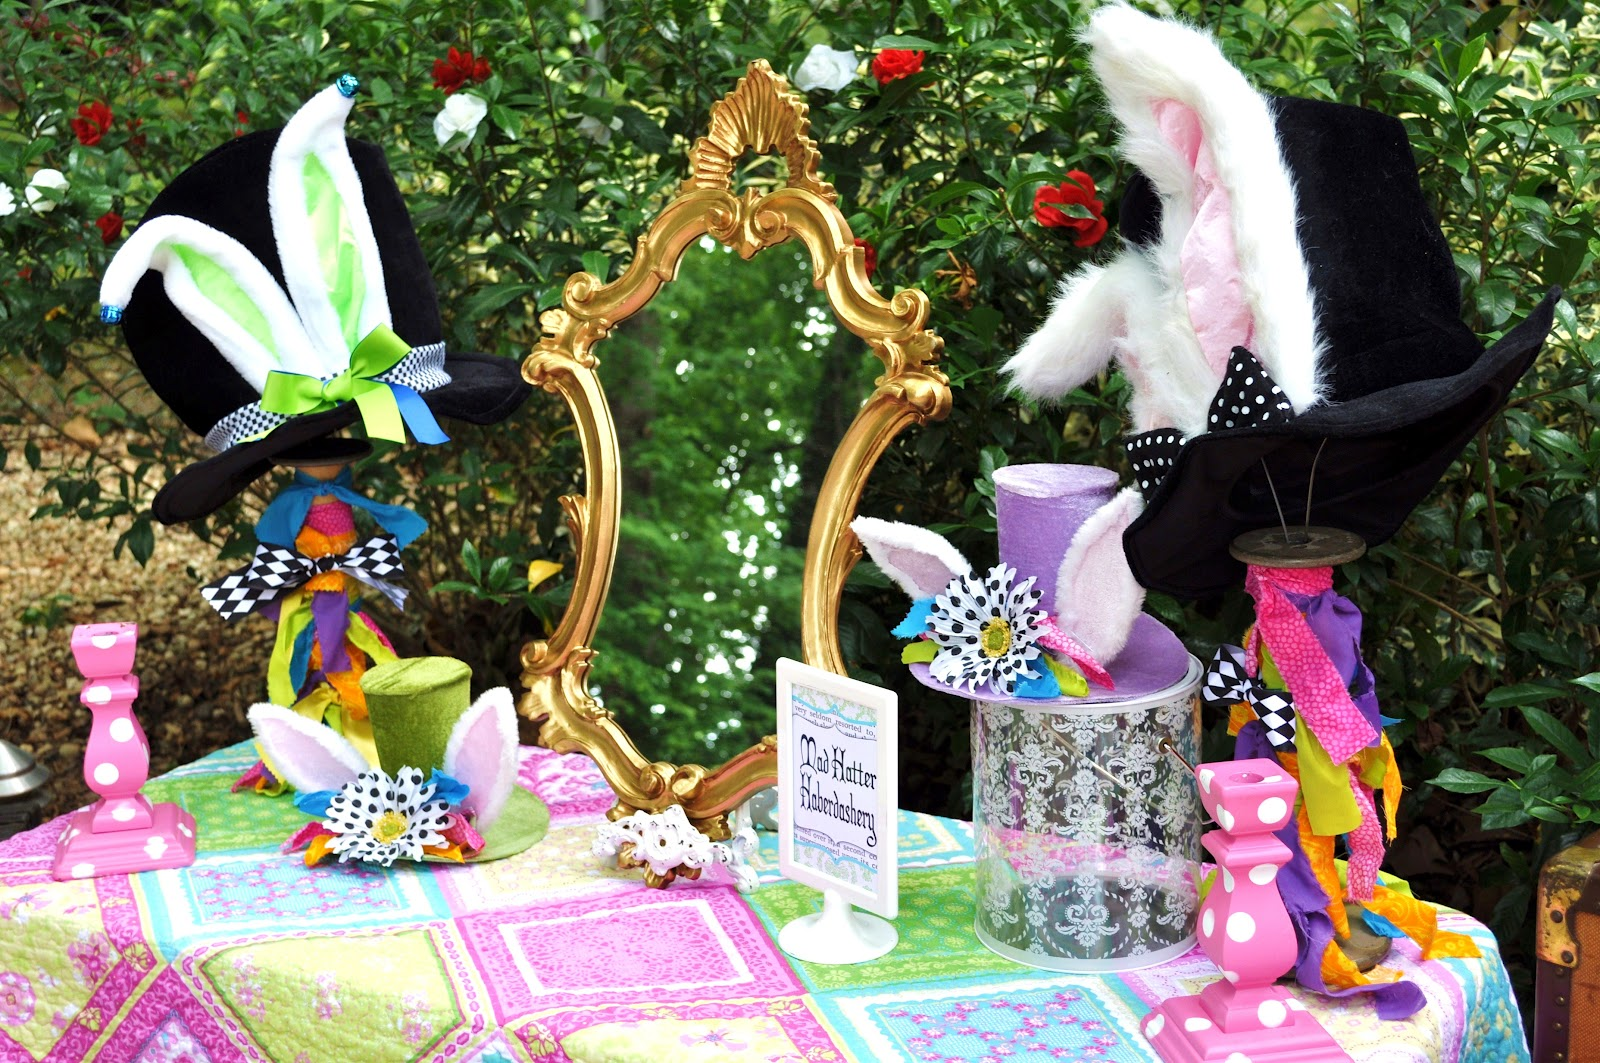 Mad hatter tea party decoration ideas - Mad Hatter Tea Party Decoration Ideas 28